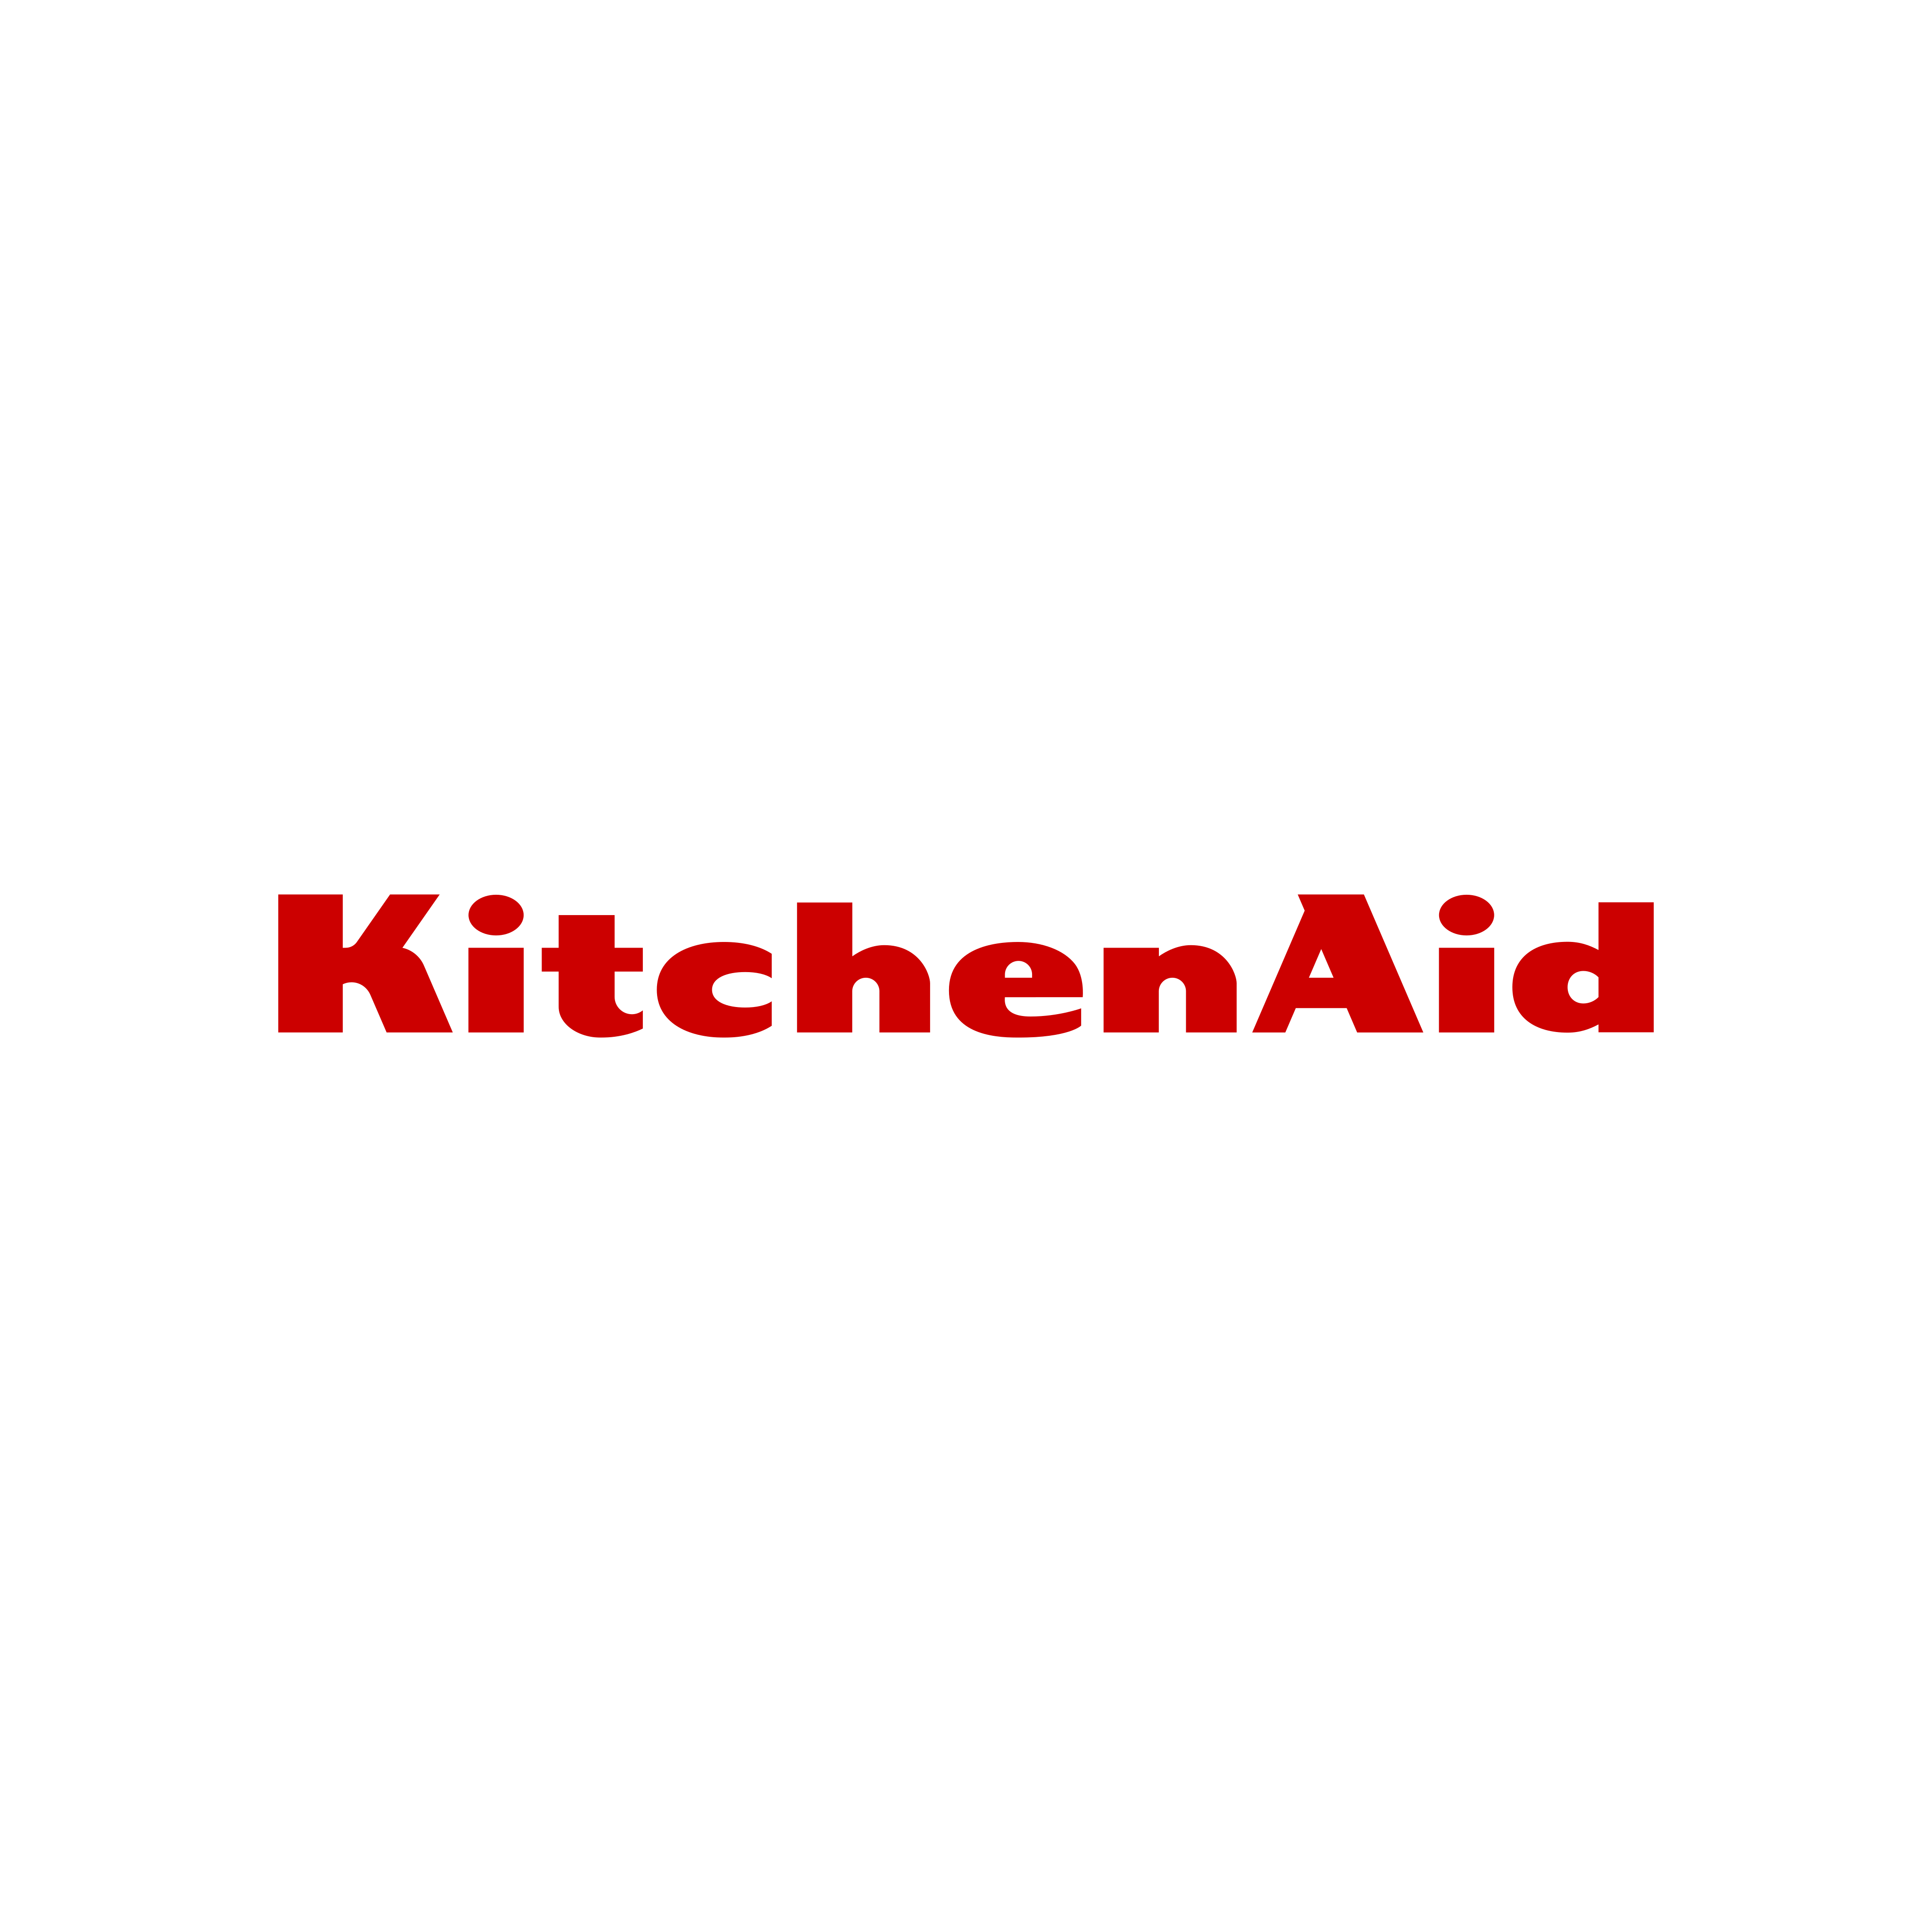 kitchenaid logo 0 - KitchenAid Logo